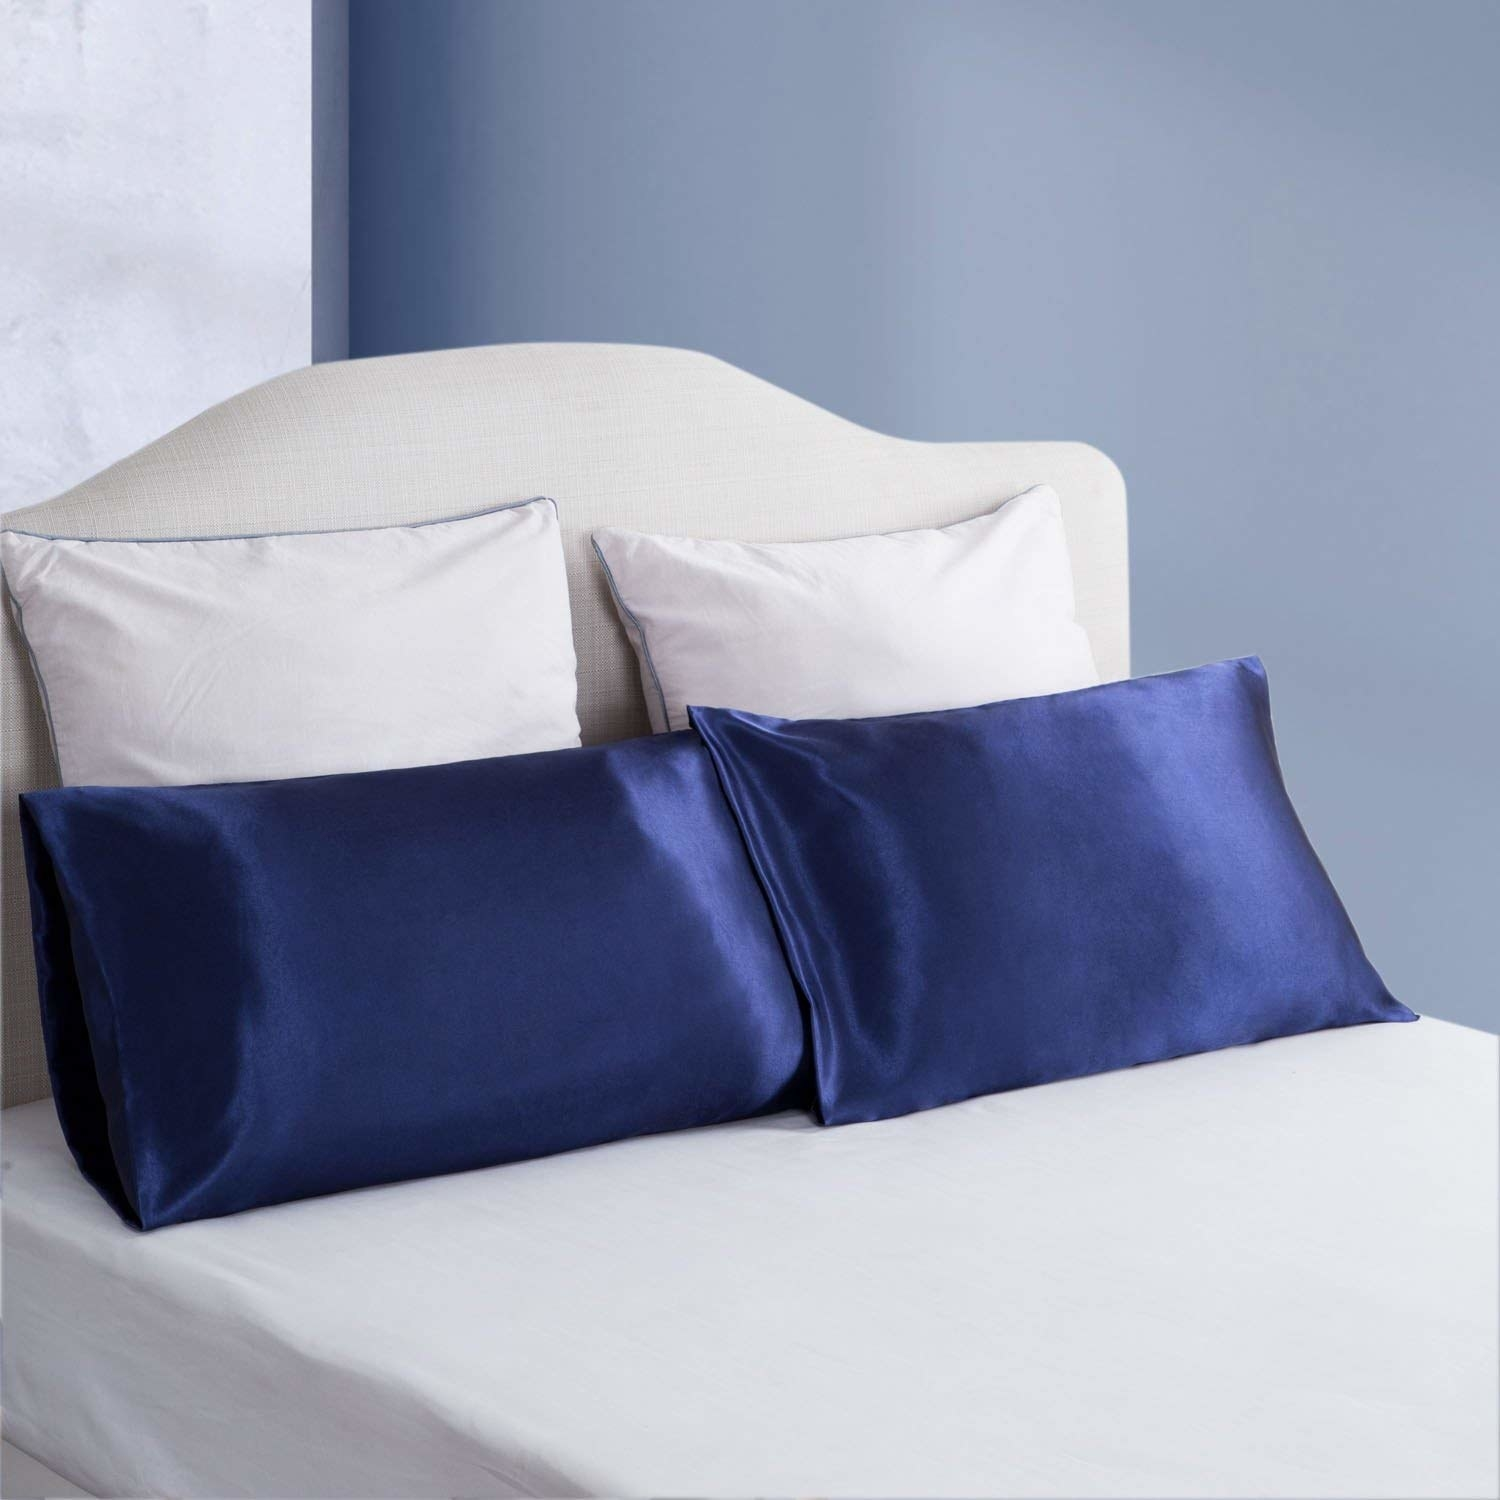 navy blue satin pillowcases on pillow on made up bed